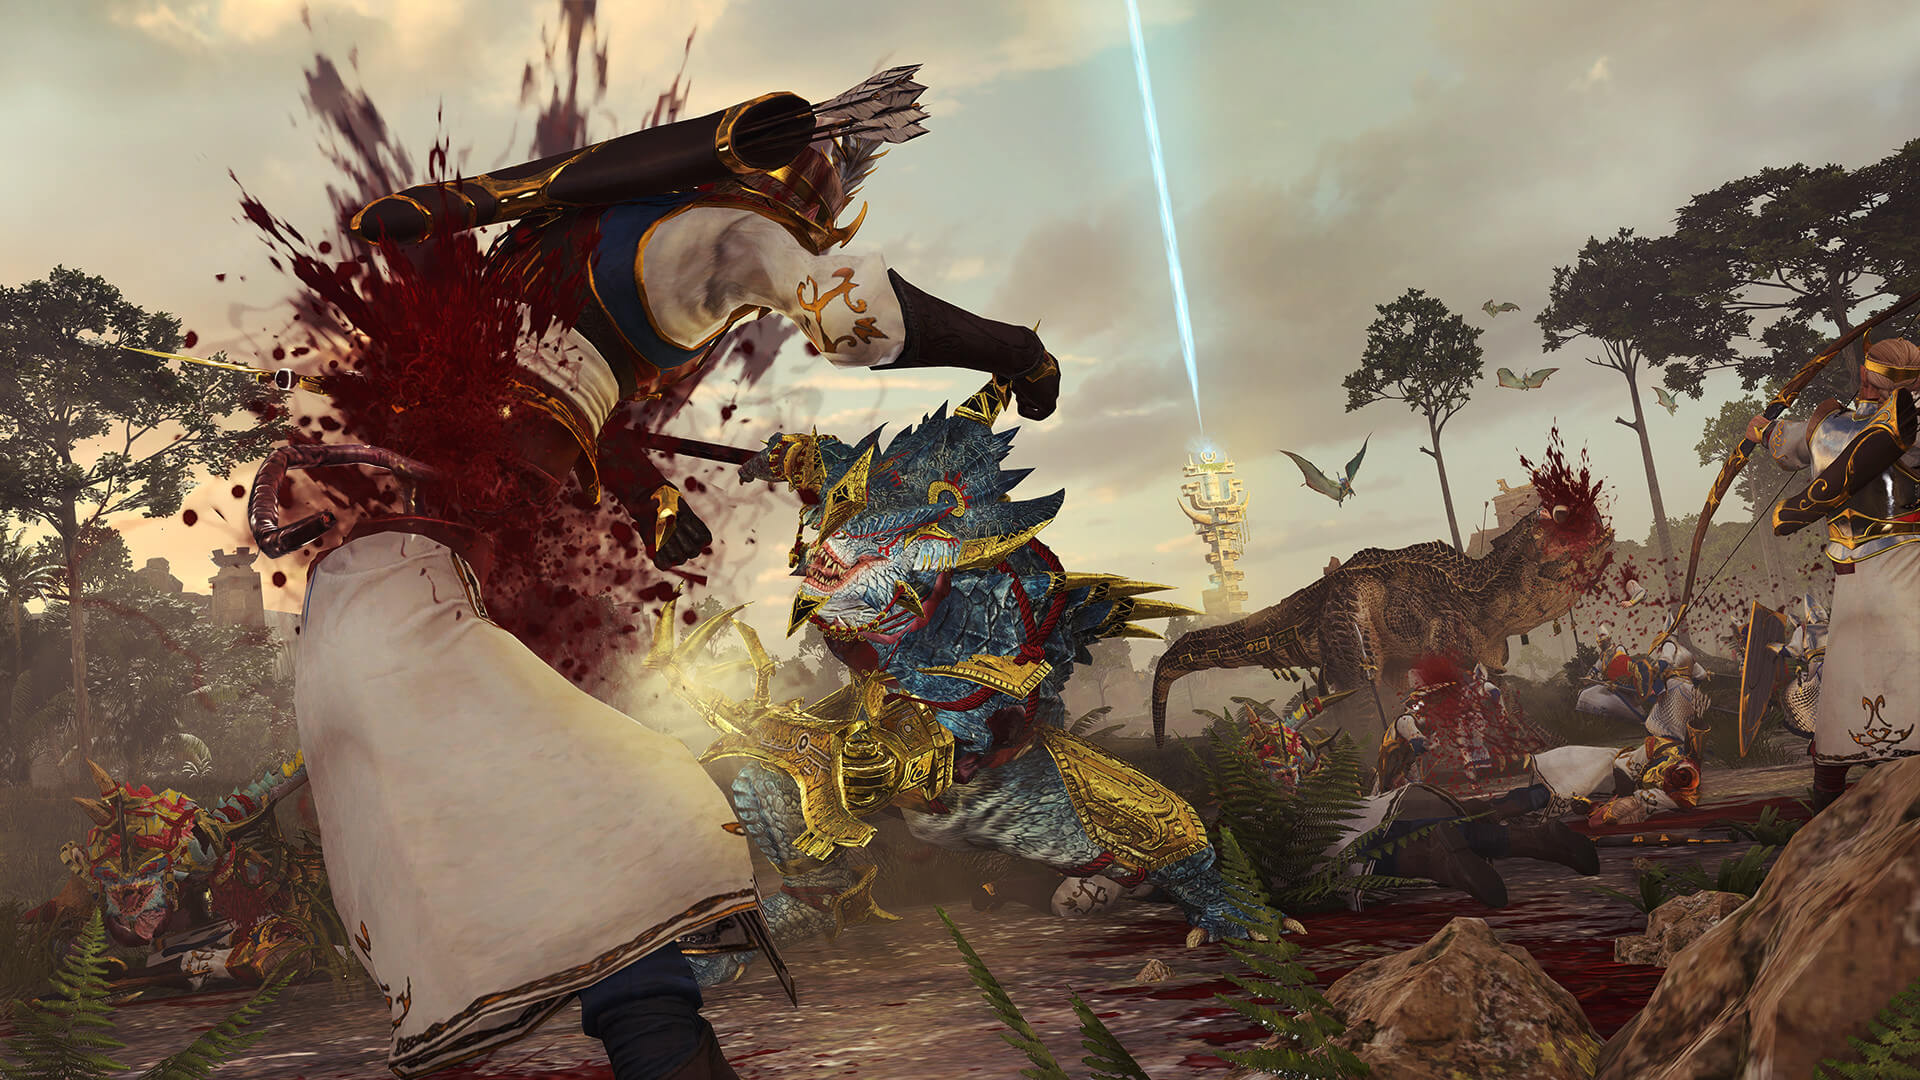 Zombies Wallpaper 1920x1080 Total War: Warhammer I...